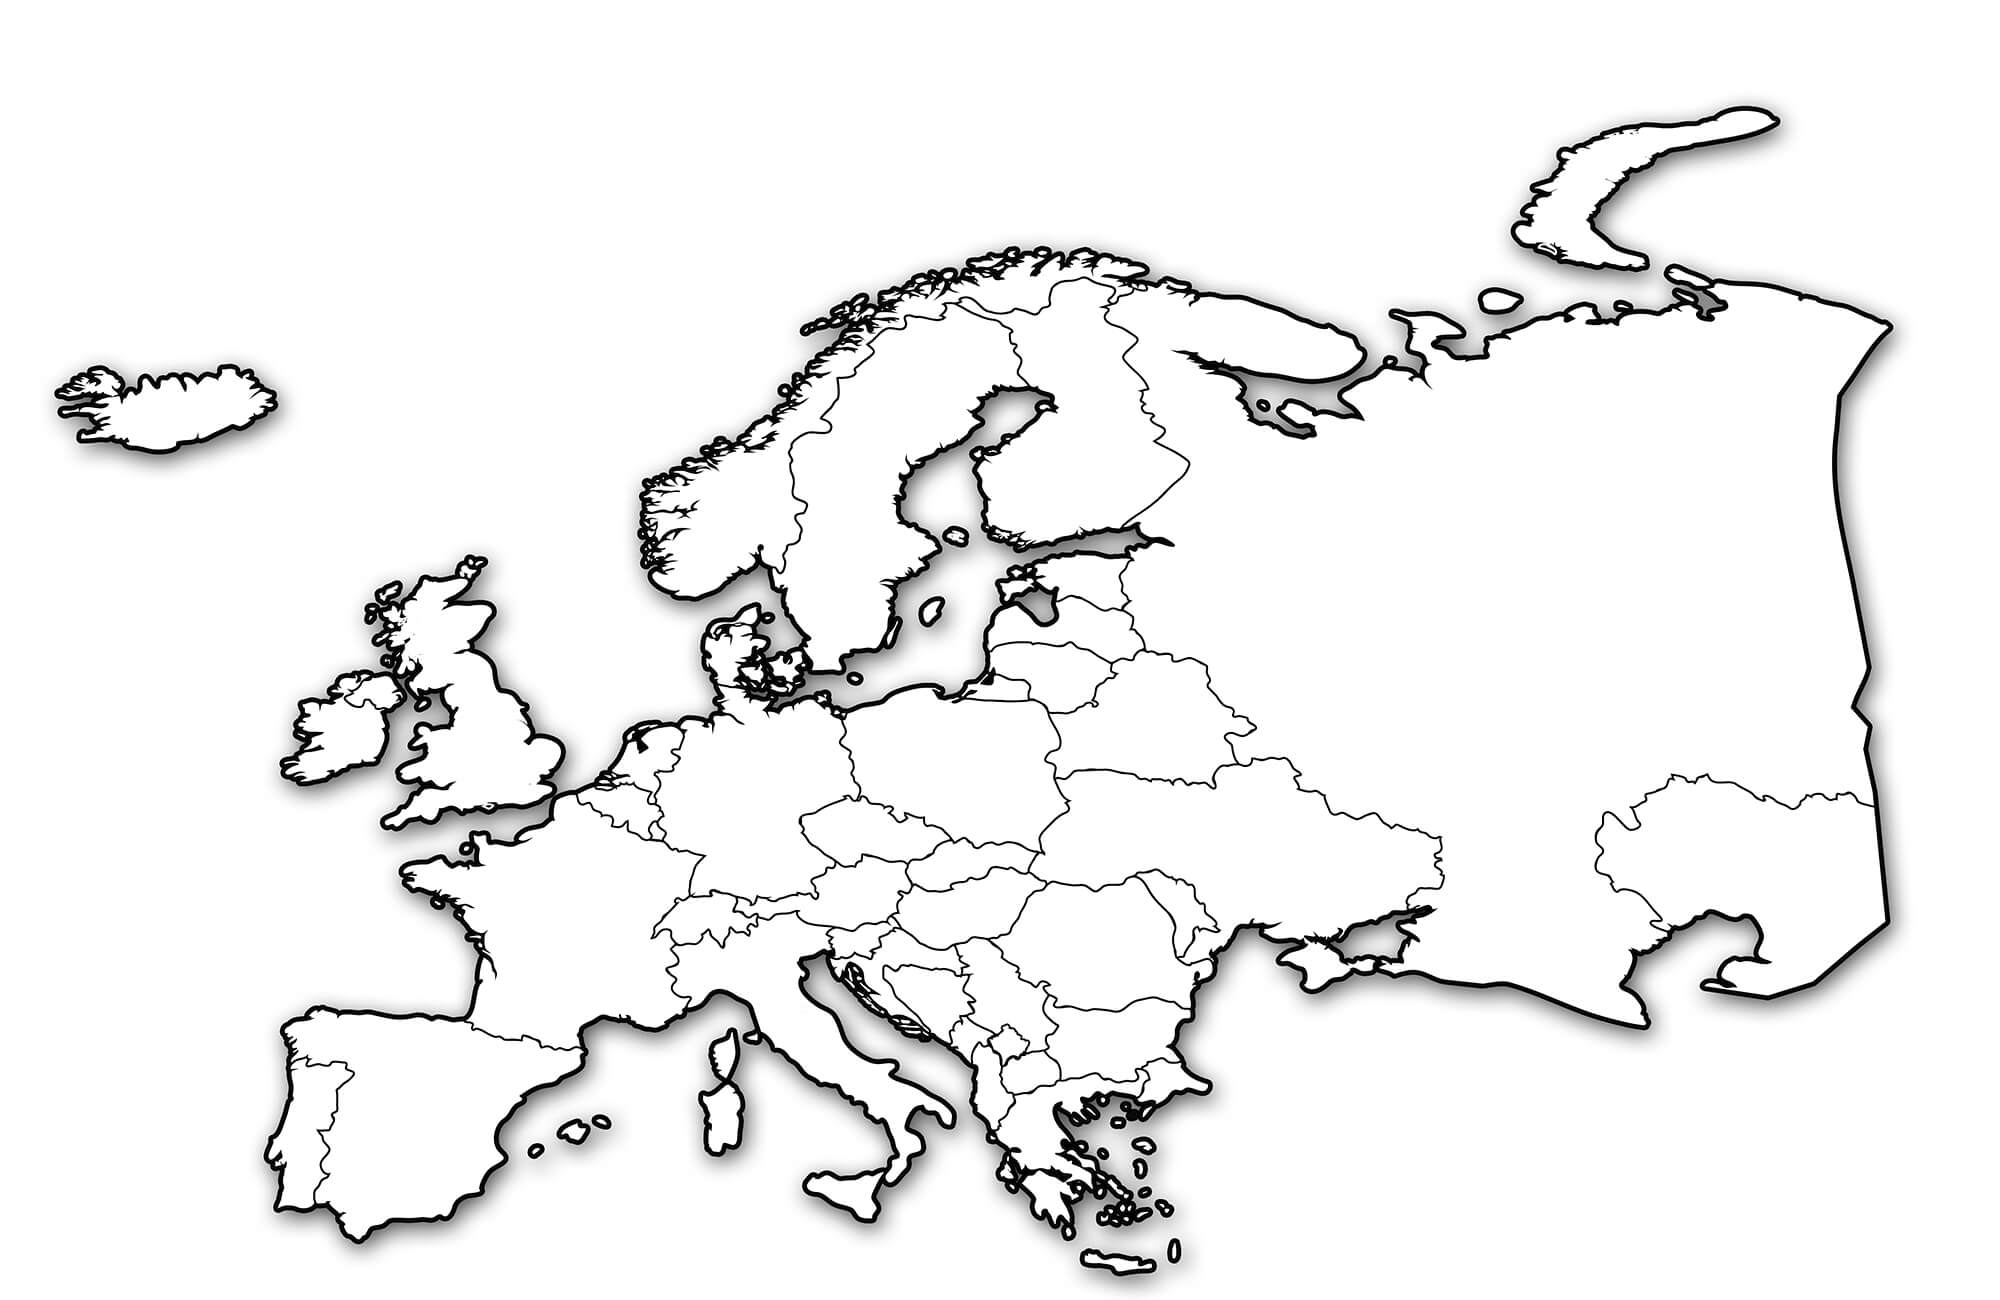 2000x1300 Europe Maps Political, Physical, Cities And Blank Outline